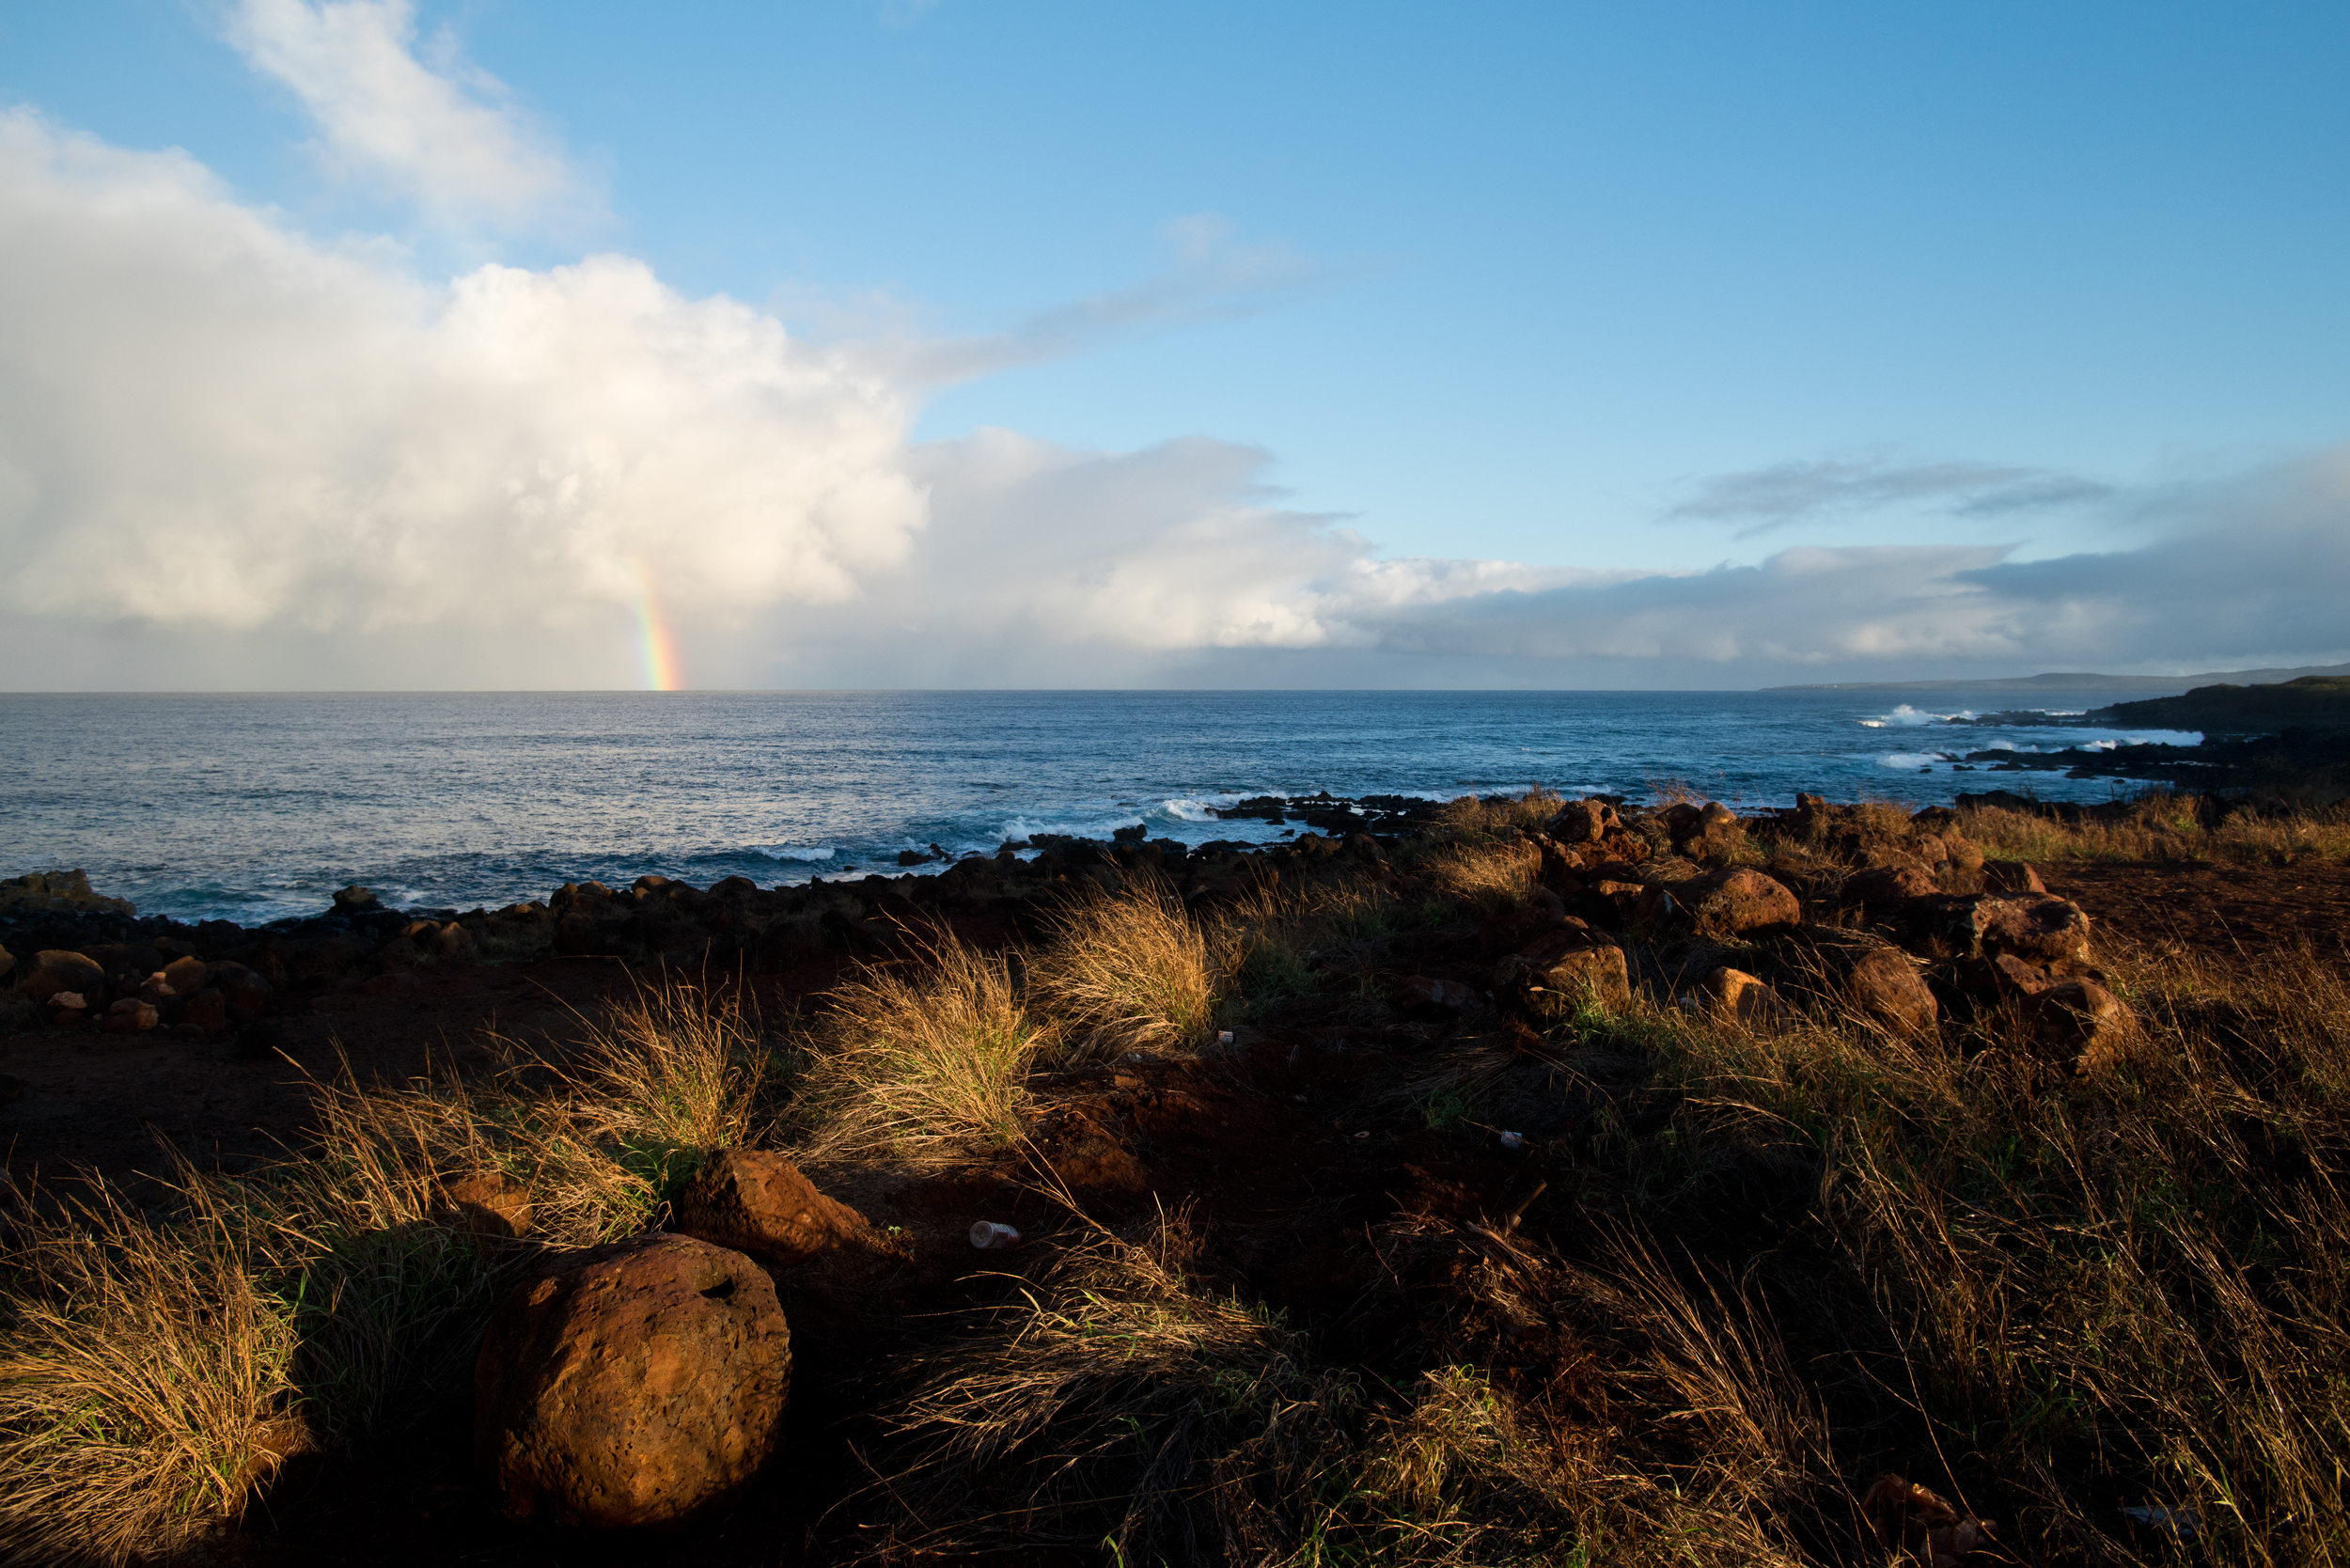 130123-Rainbow-at-Sunrise-West-Molokai_DSC2092.jpg